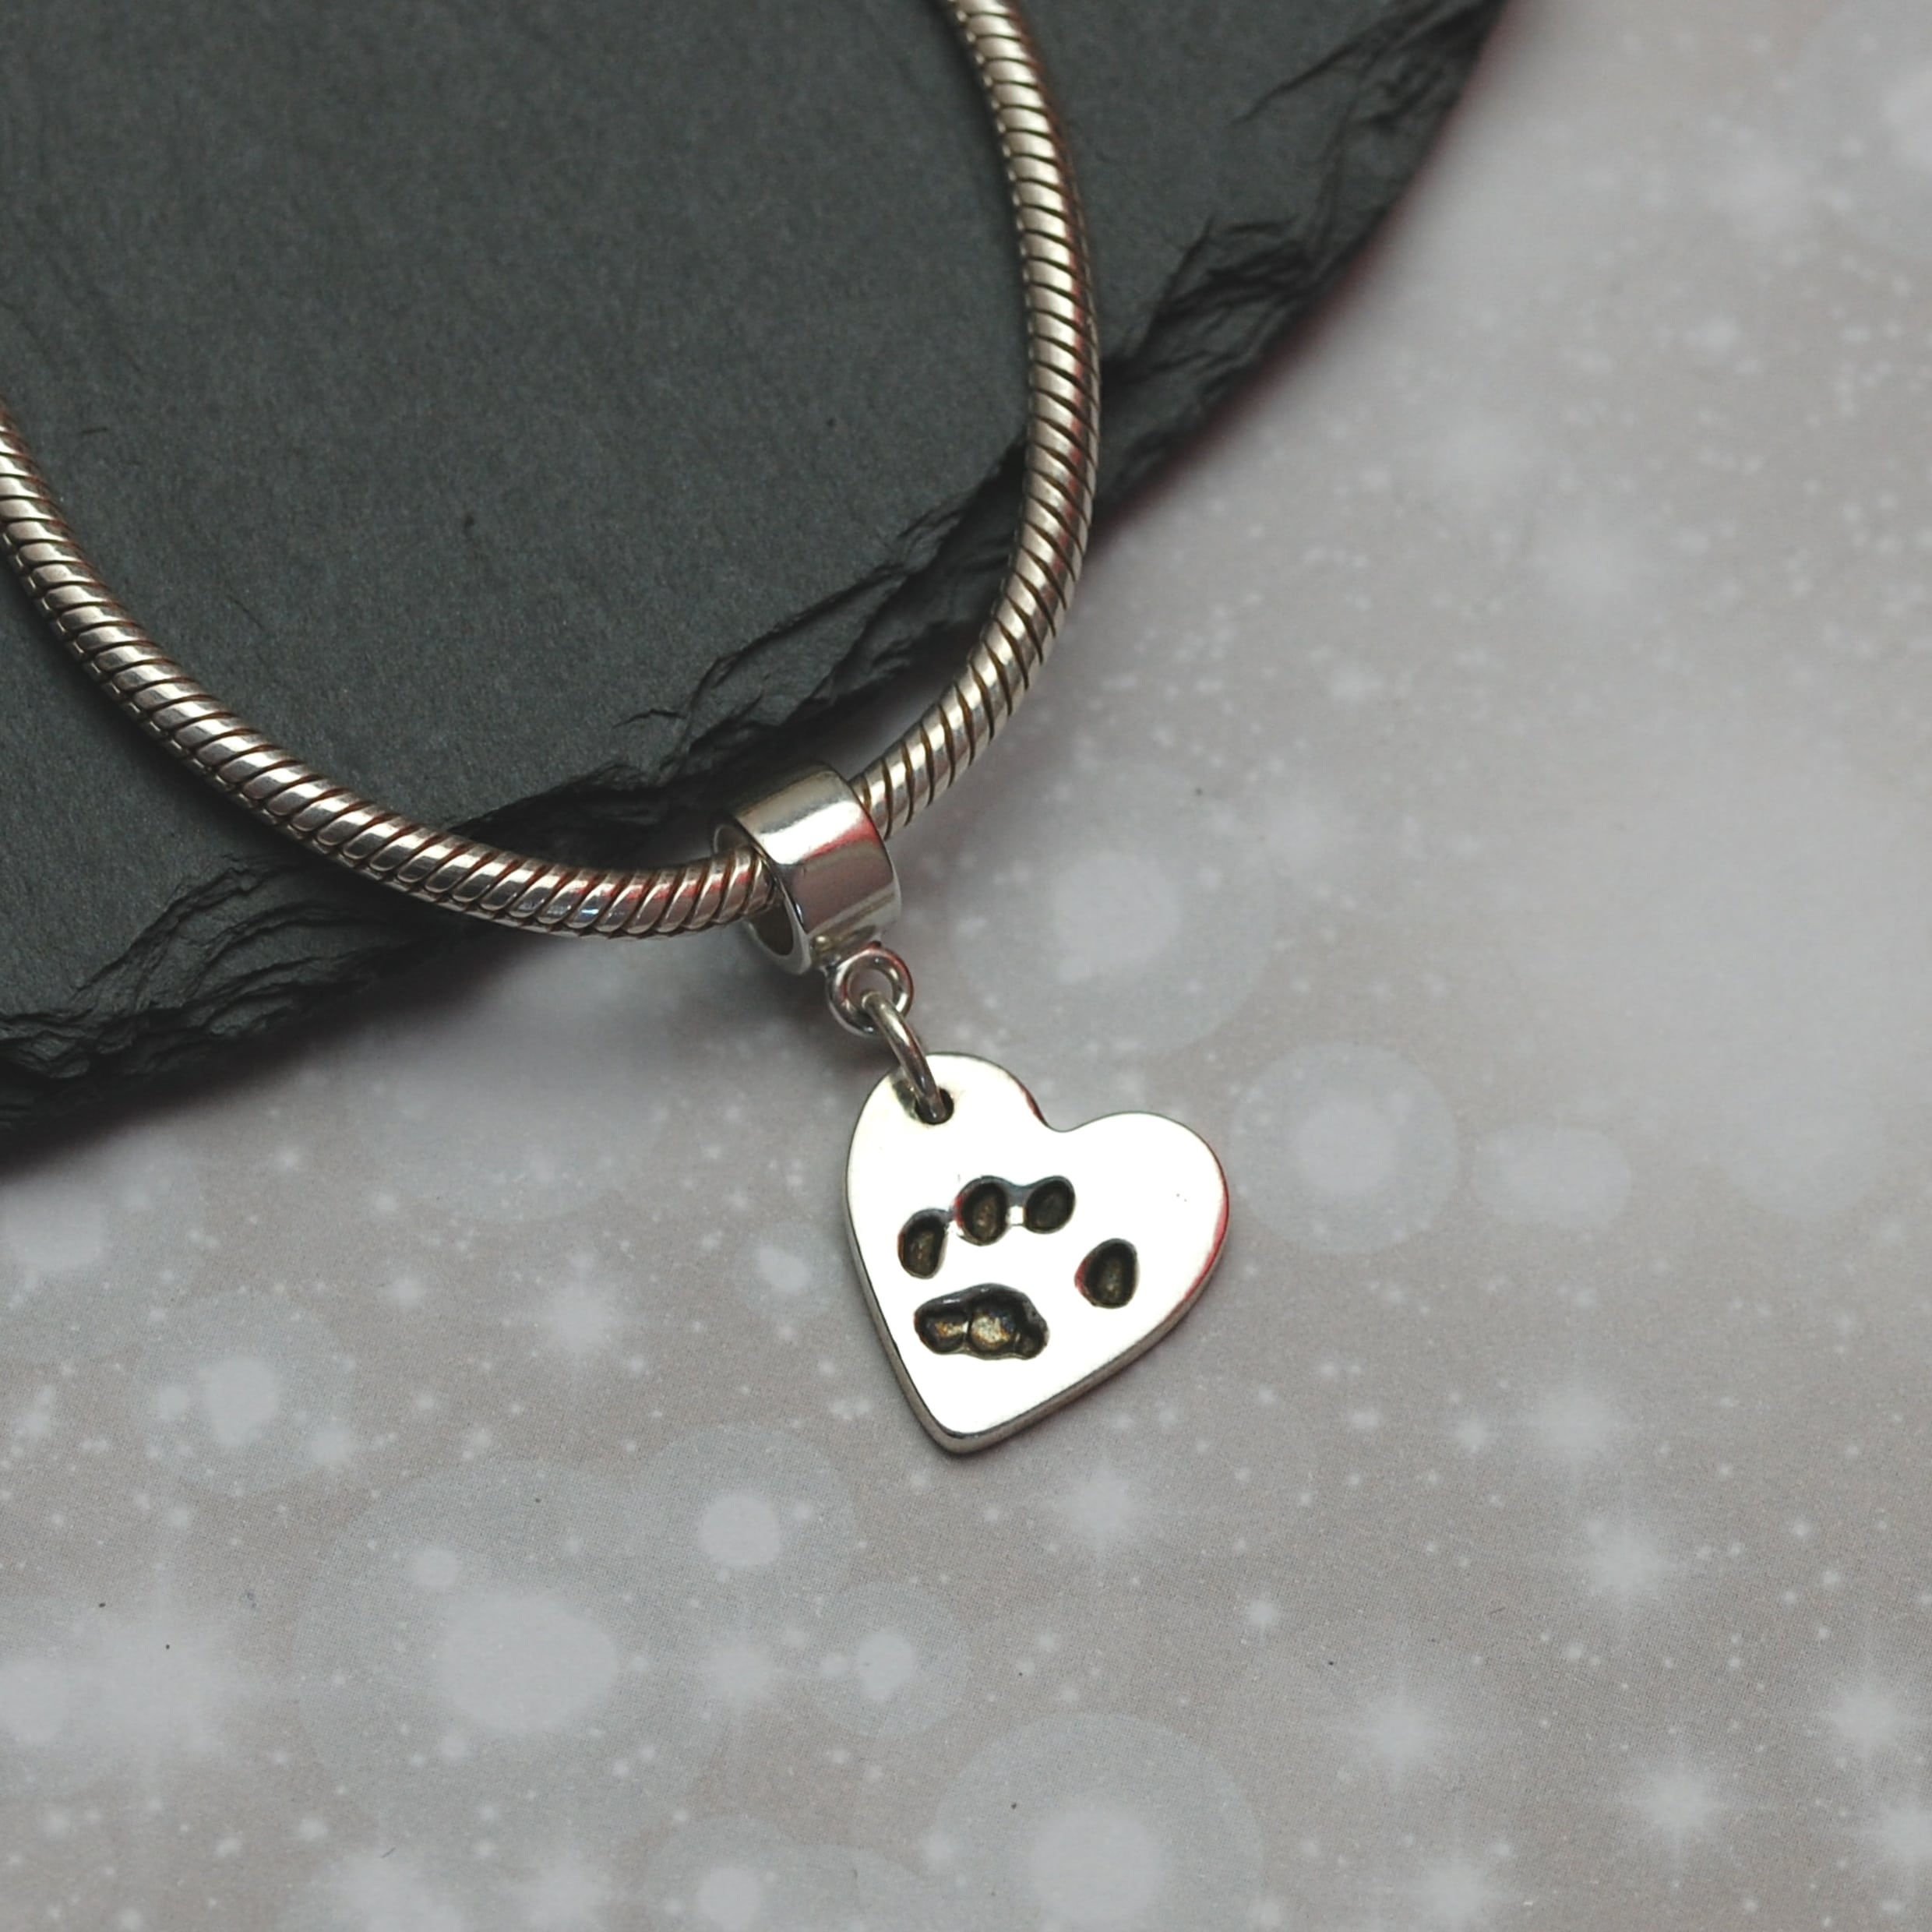 Small silver paw print charm with charm carrier